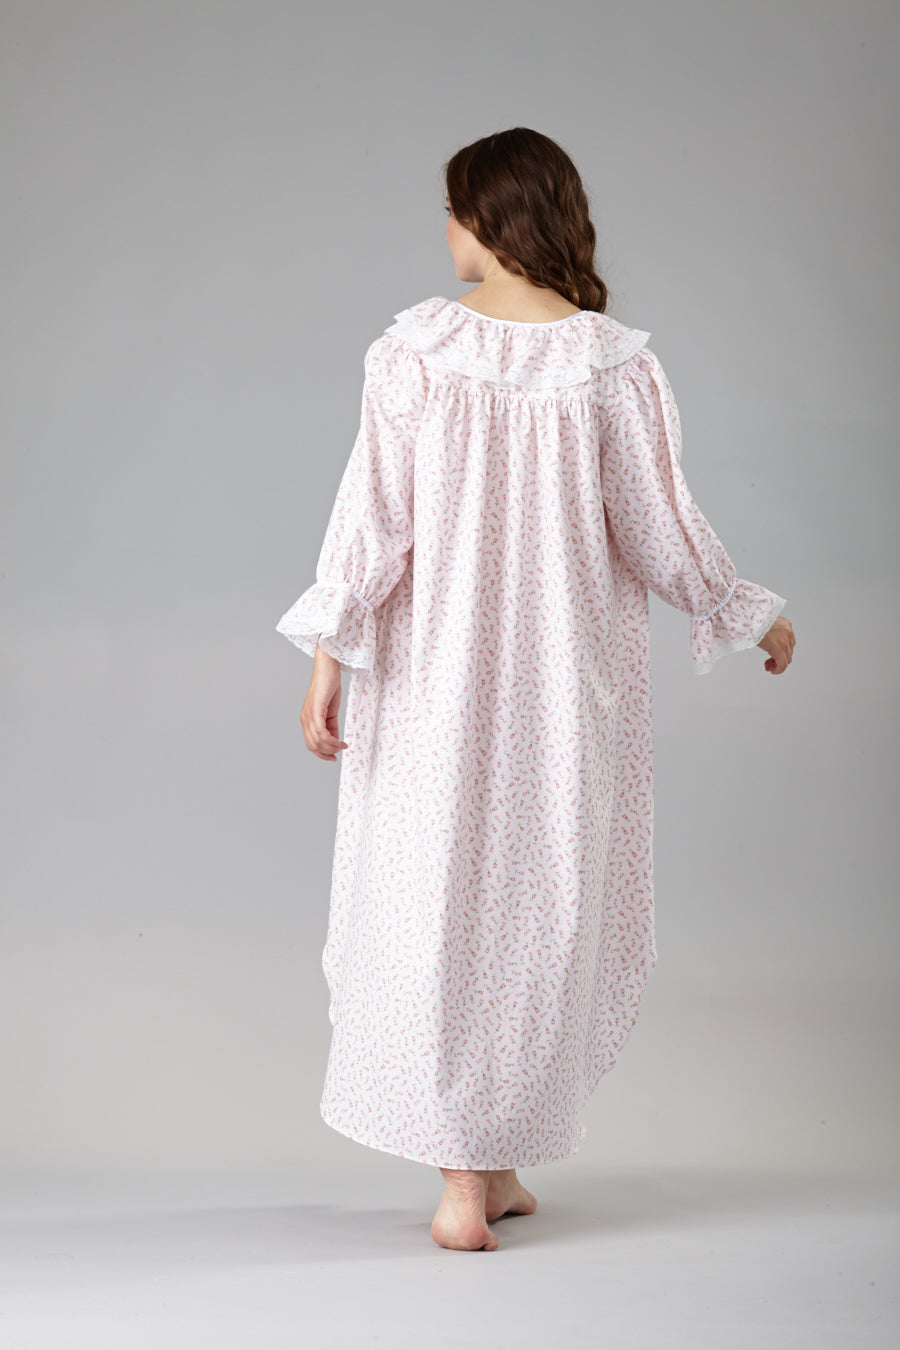 60001 Adorable Flannel flower print nightshirt